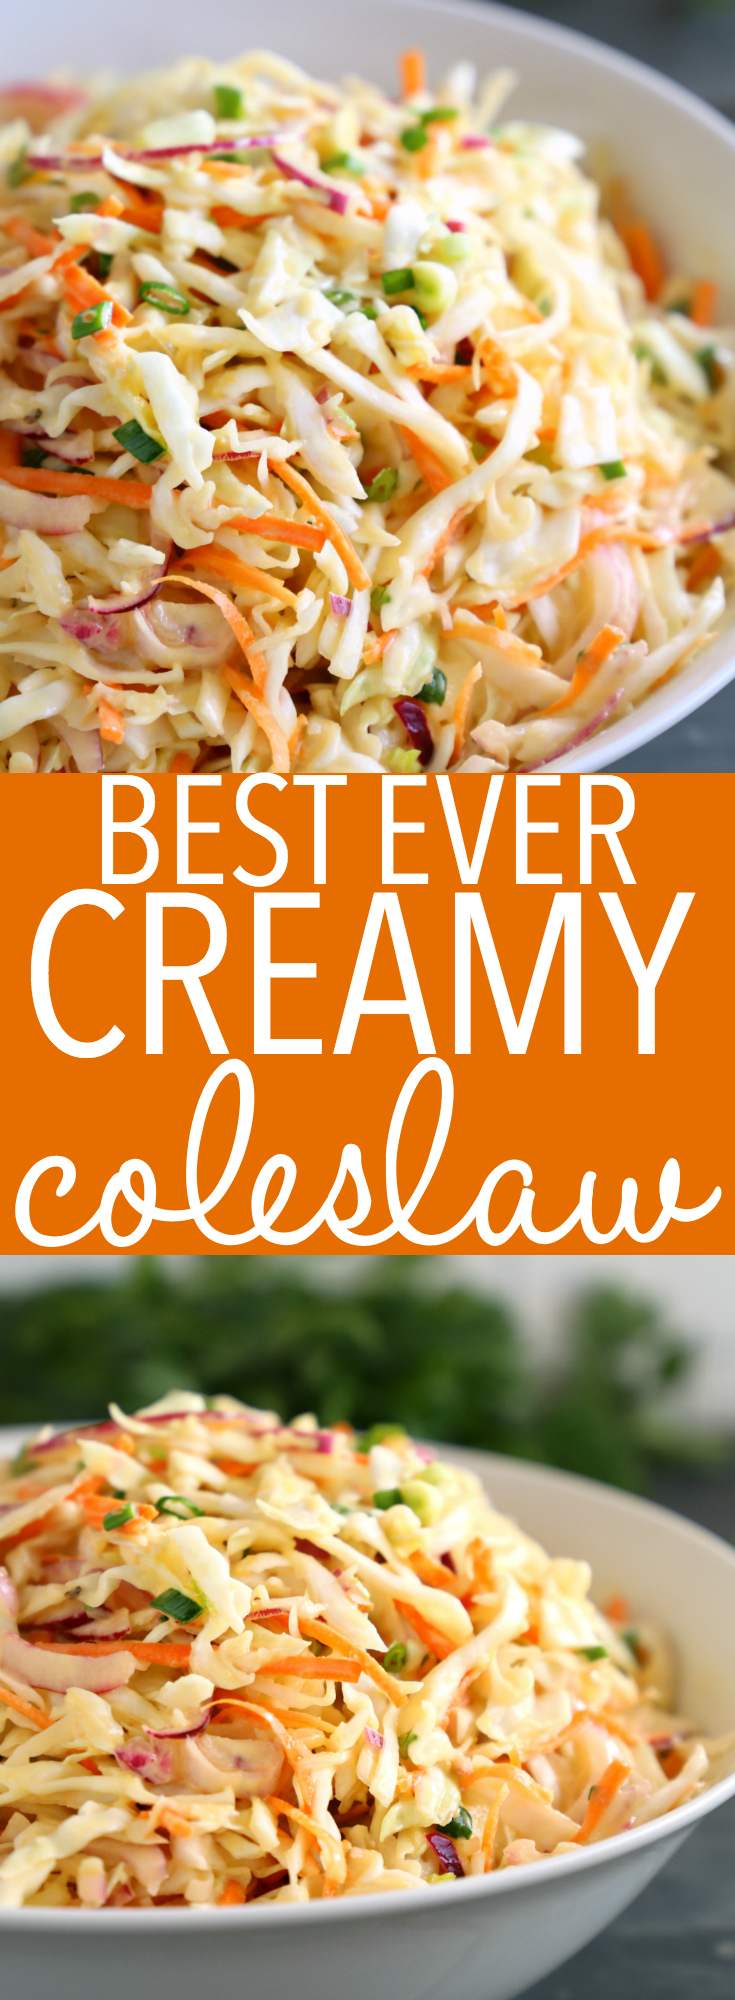 This Best Ever Creamy Coleslaw is the only coleslaw recipe you'll need for all your summer parties and barbecues! It's easy to make with just a few simple ingredients! Recipe from thebusybaker.ca! #bestcoleslaw #easycoleslaw #creamycoleslaw via @busybakerblog